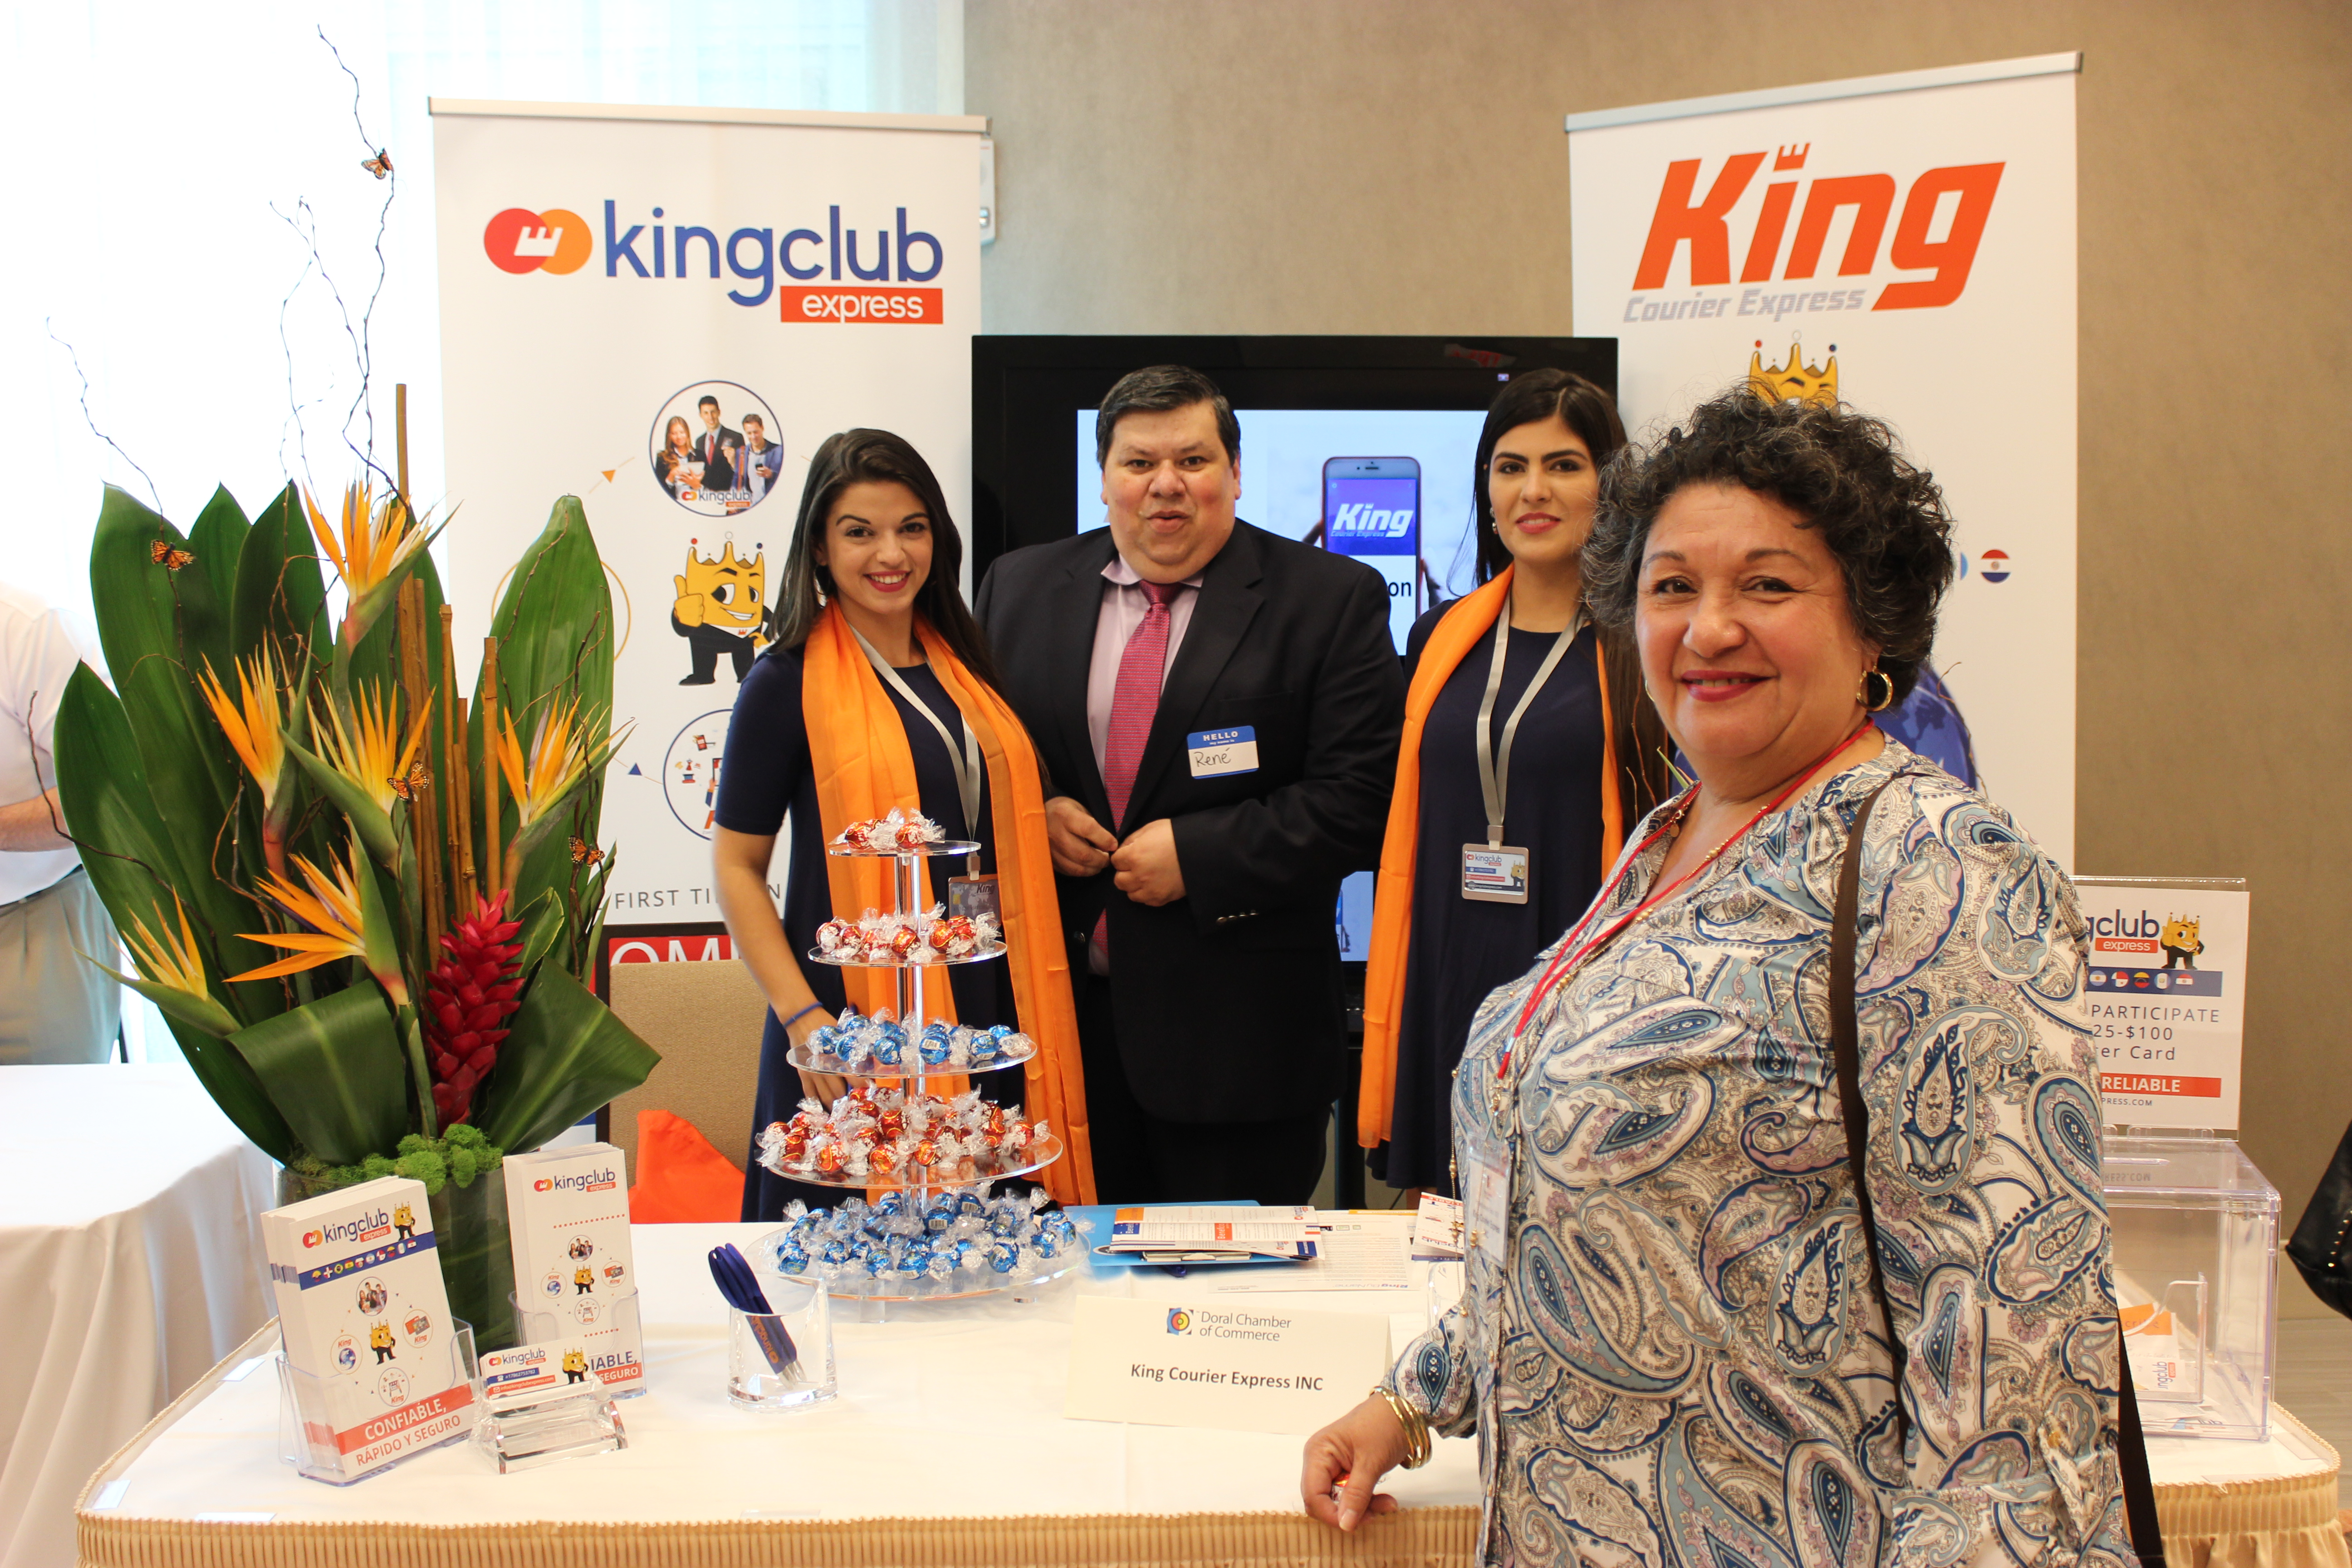 Kingclub Express at PowerBusiness Expo May 2017, Doral Chamber of Commerce event.